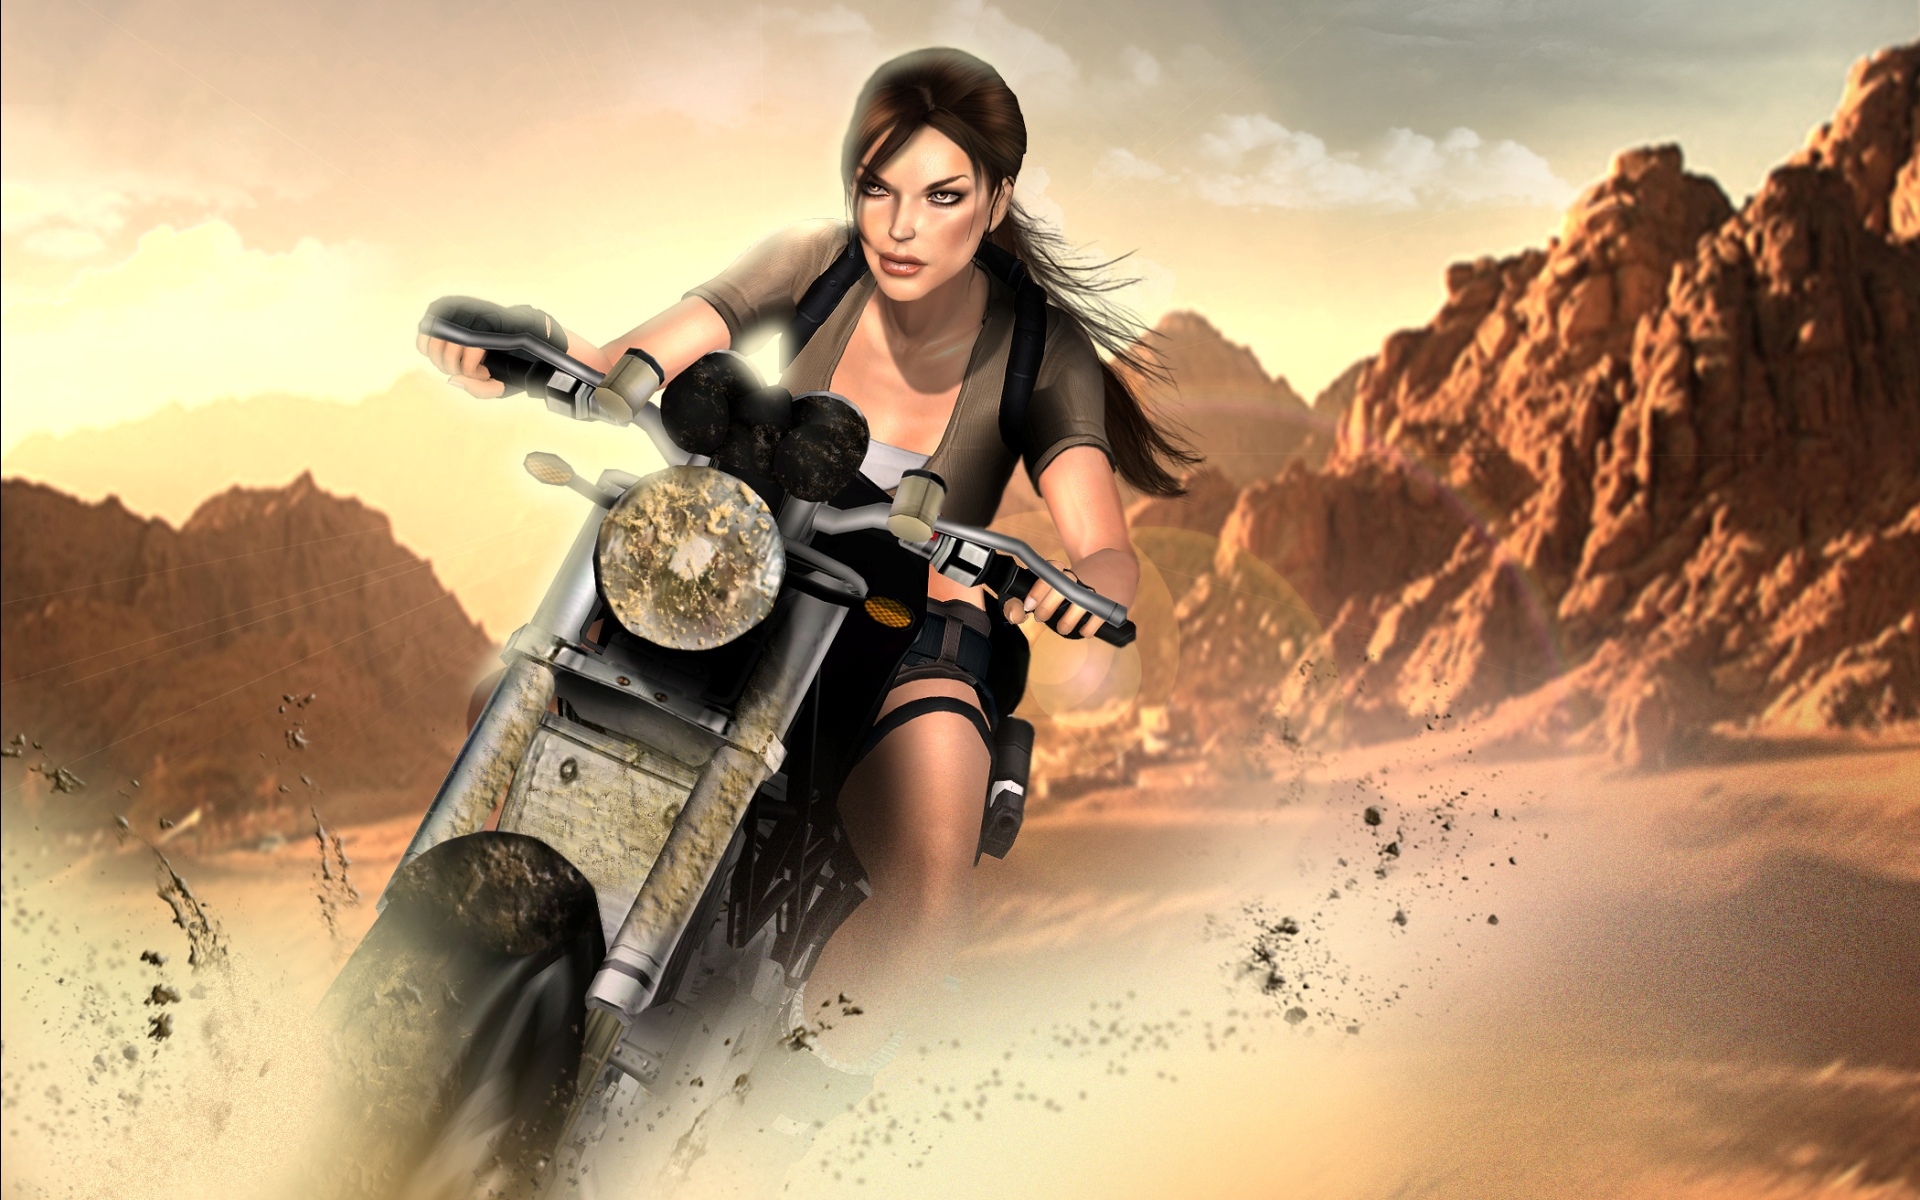 Tomb Raider Legend 06 Wallpapers - 1920x1200 - 1254174: www.bhmpics.com/view-tomb_raider_legend_06-wide.html